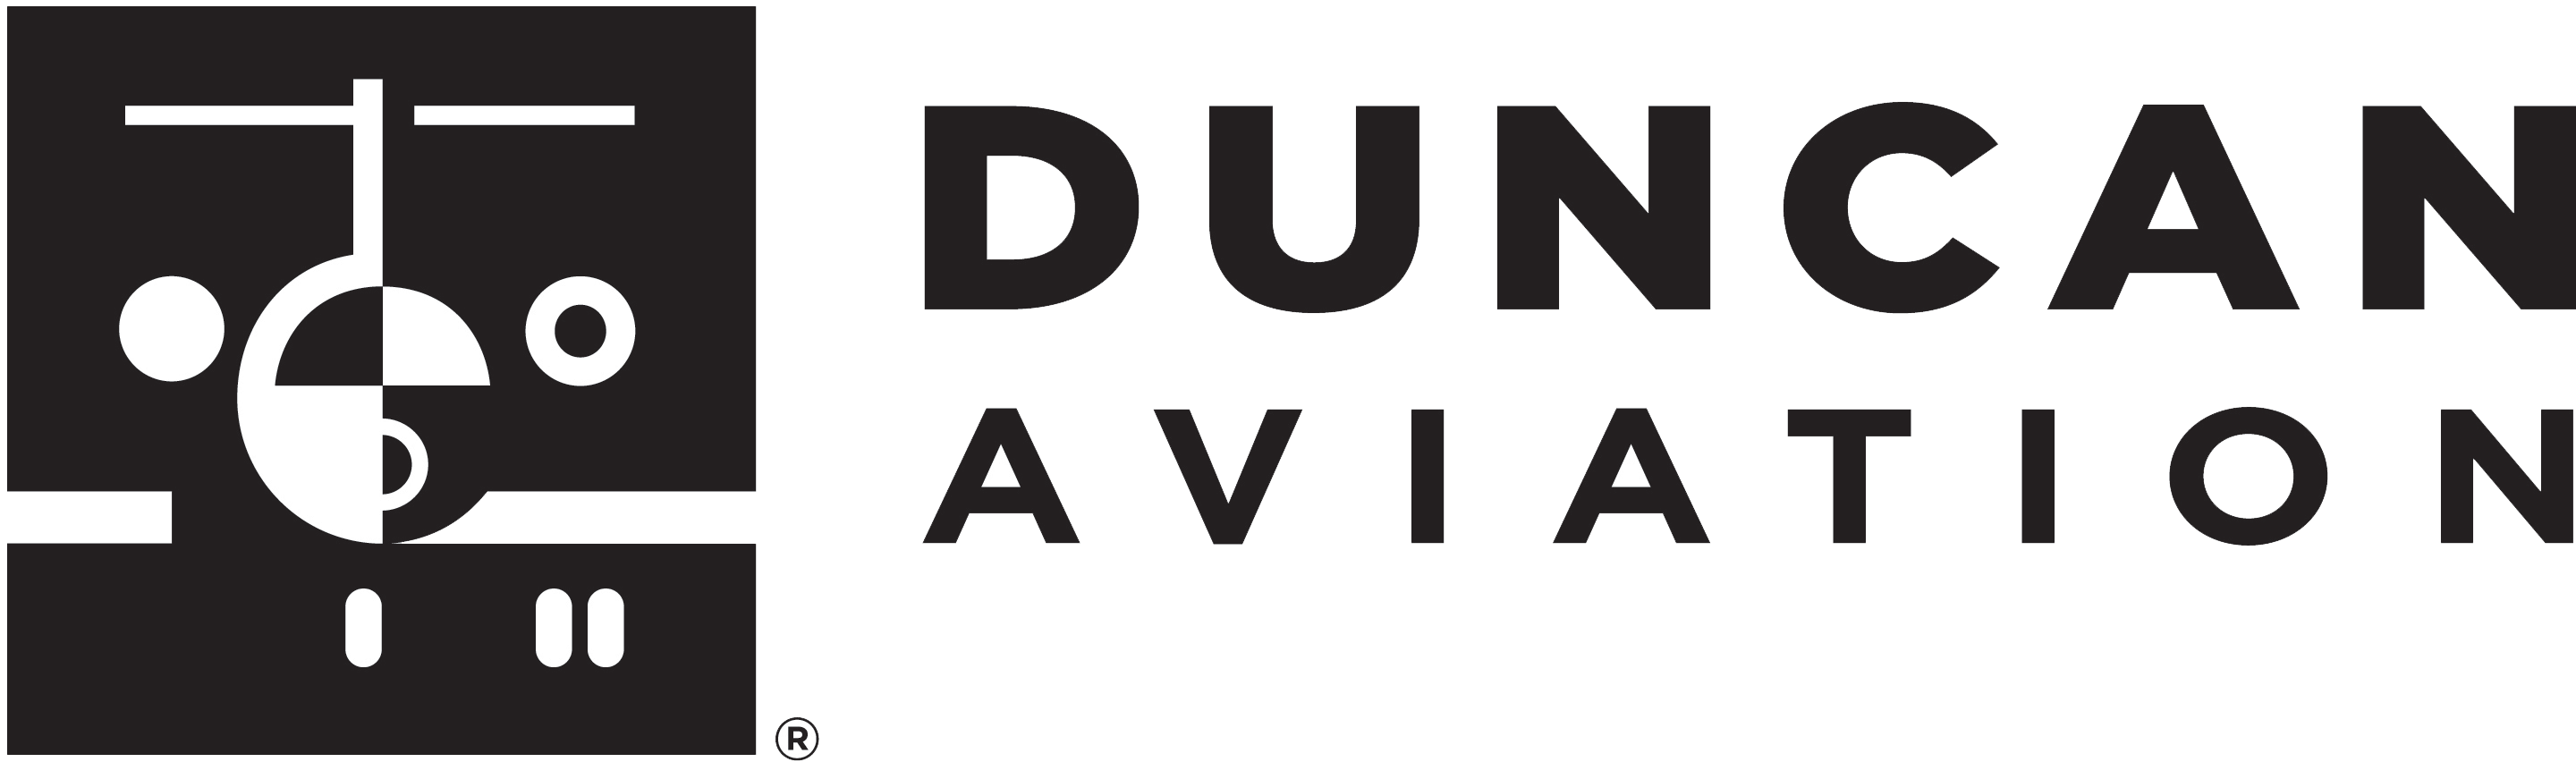 Duncan Aviation Logo